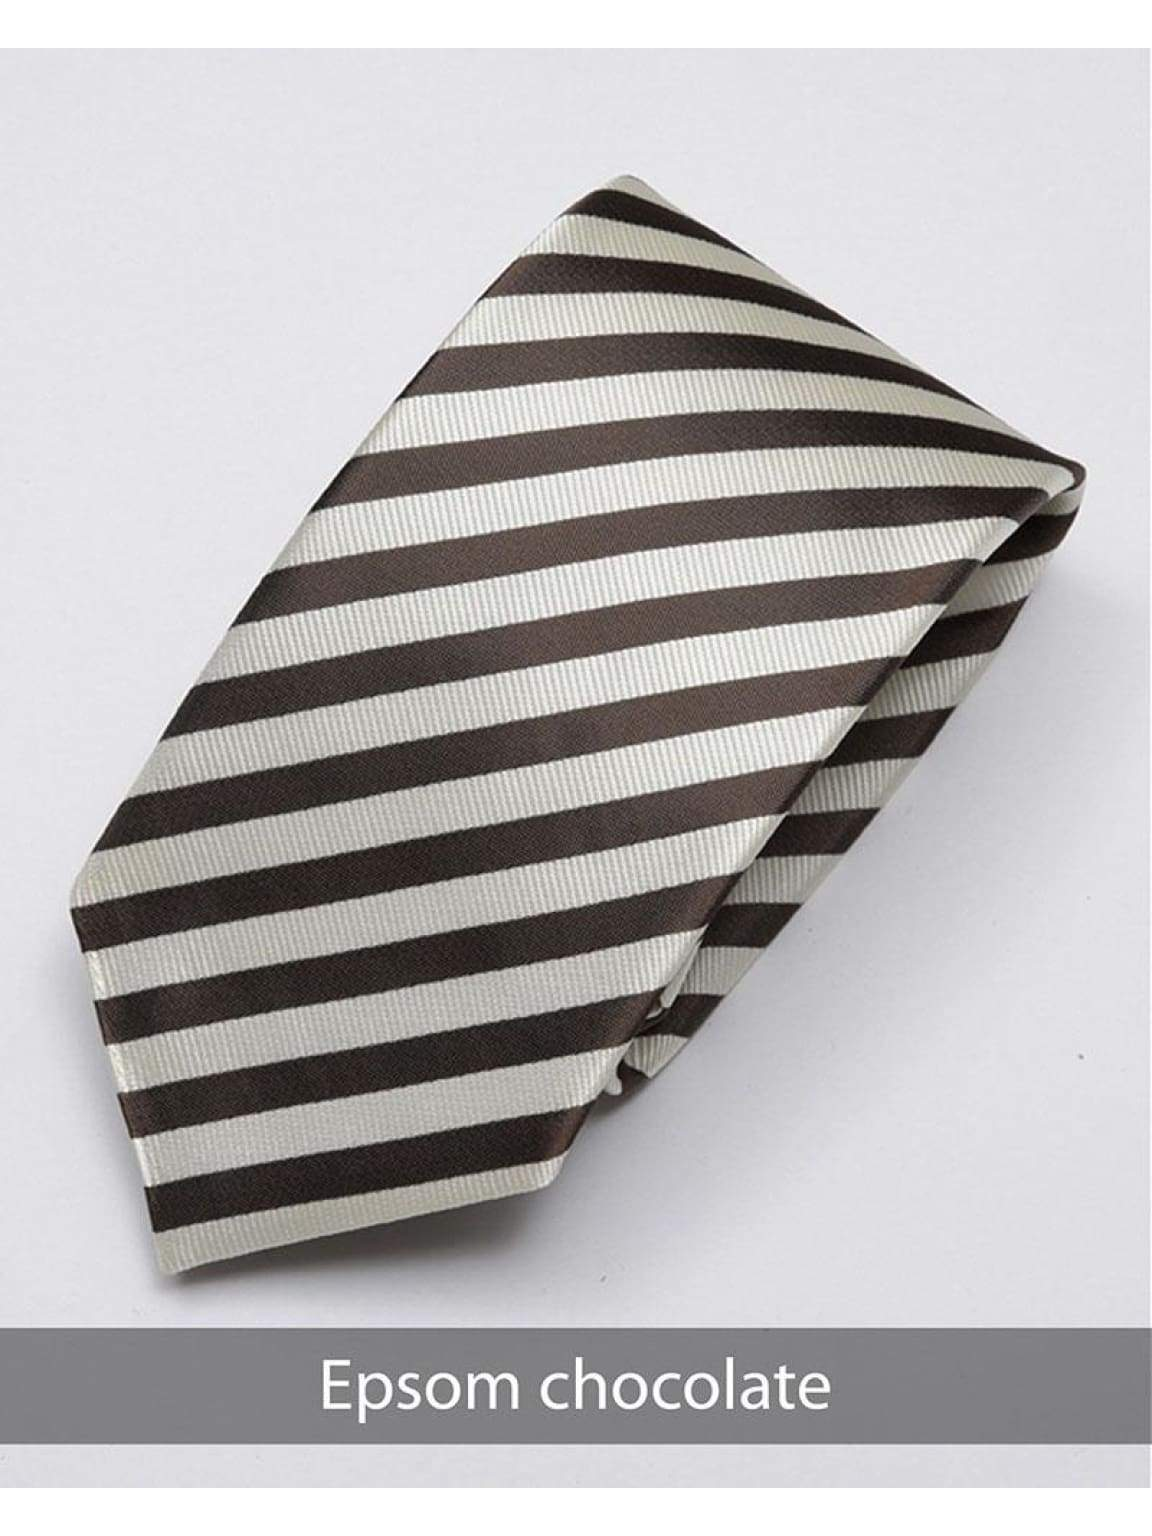 Heirloom Epsom Mens Chocolate Stripped Tie - Accessories